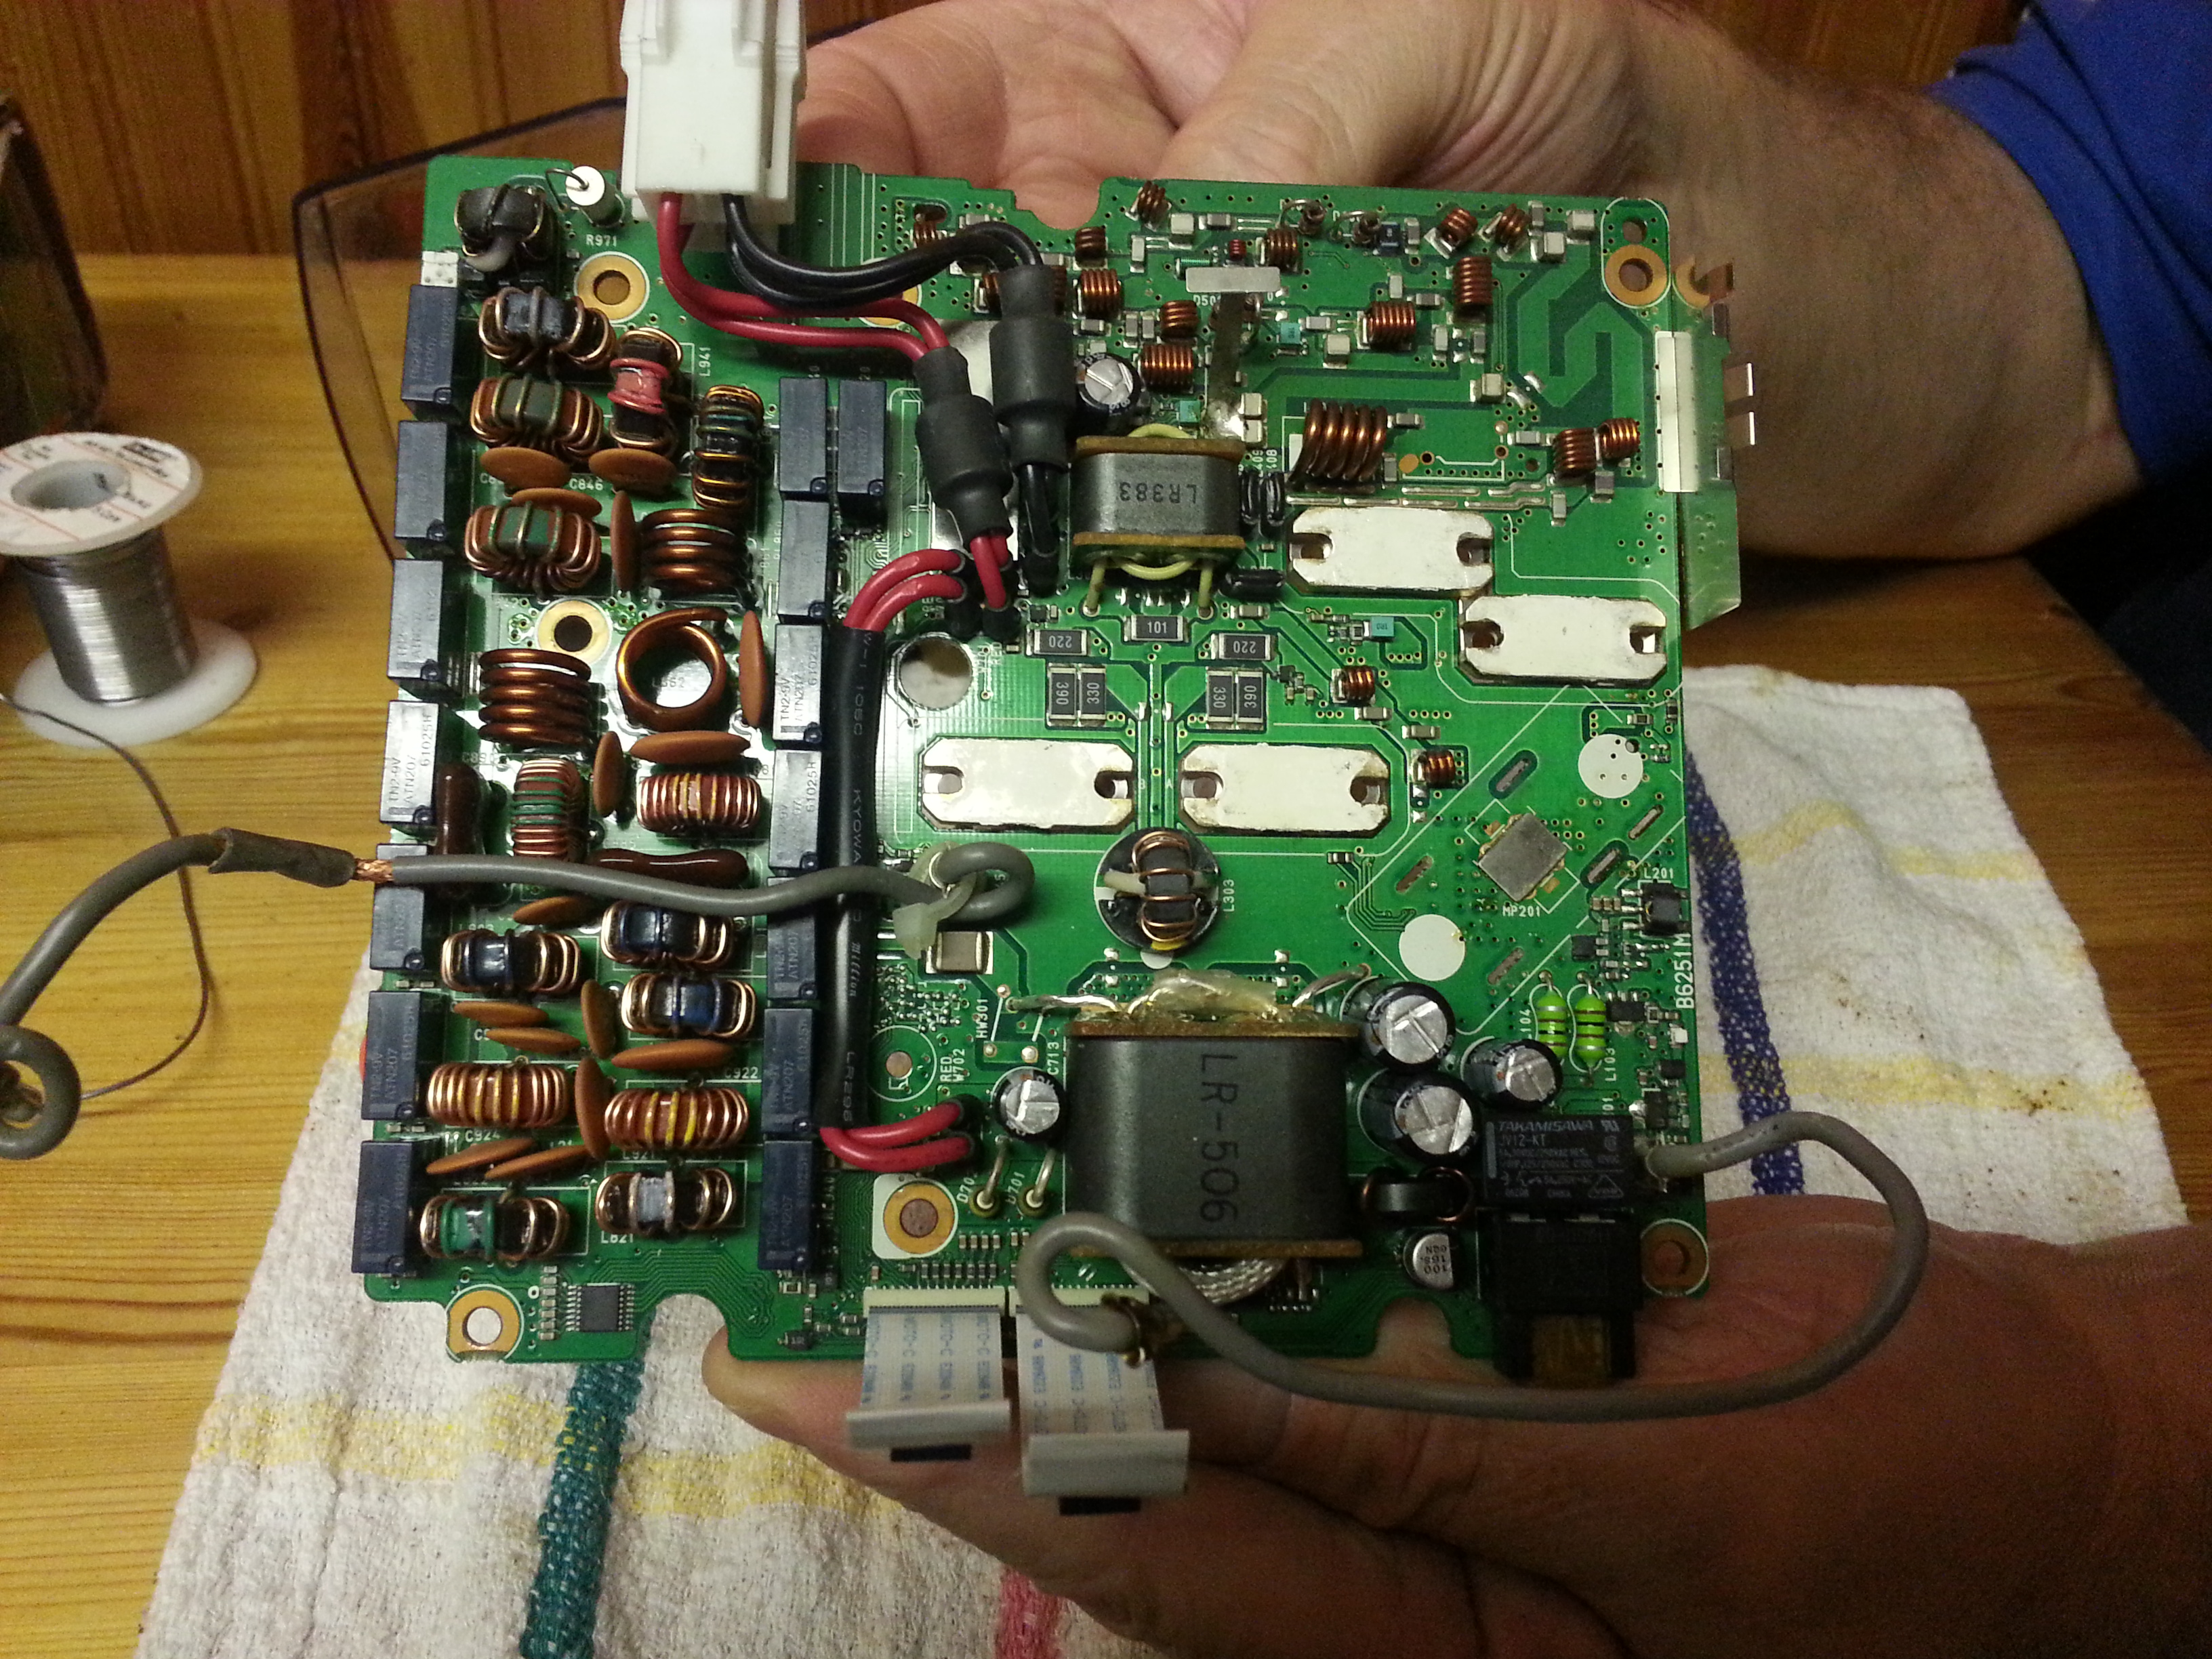 Inside the Icom 7000